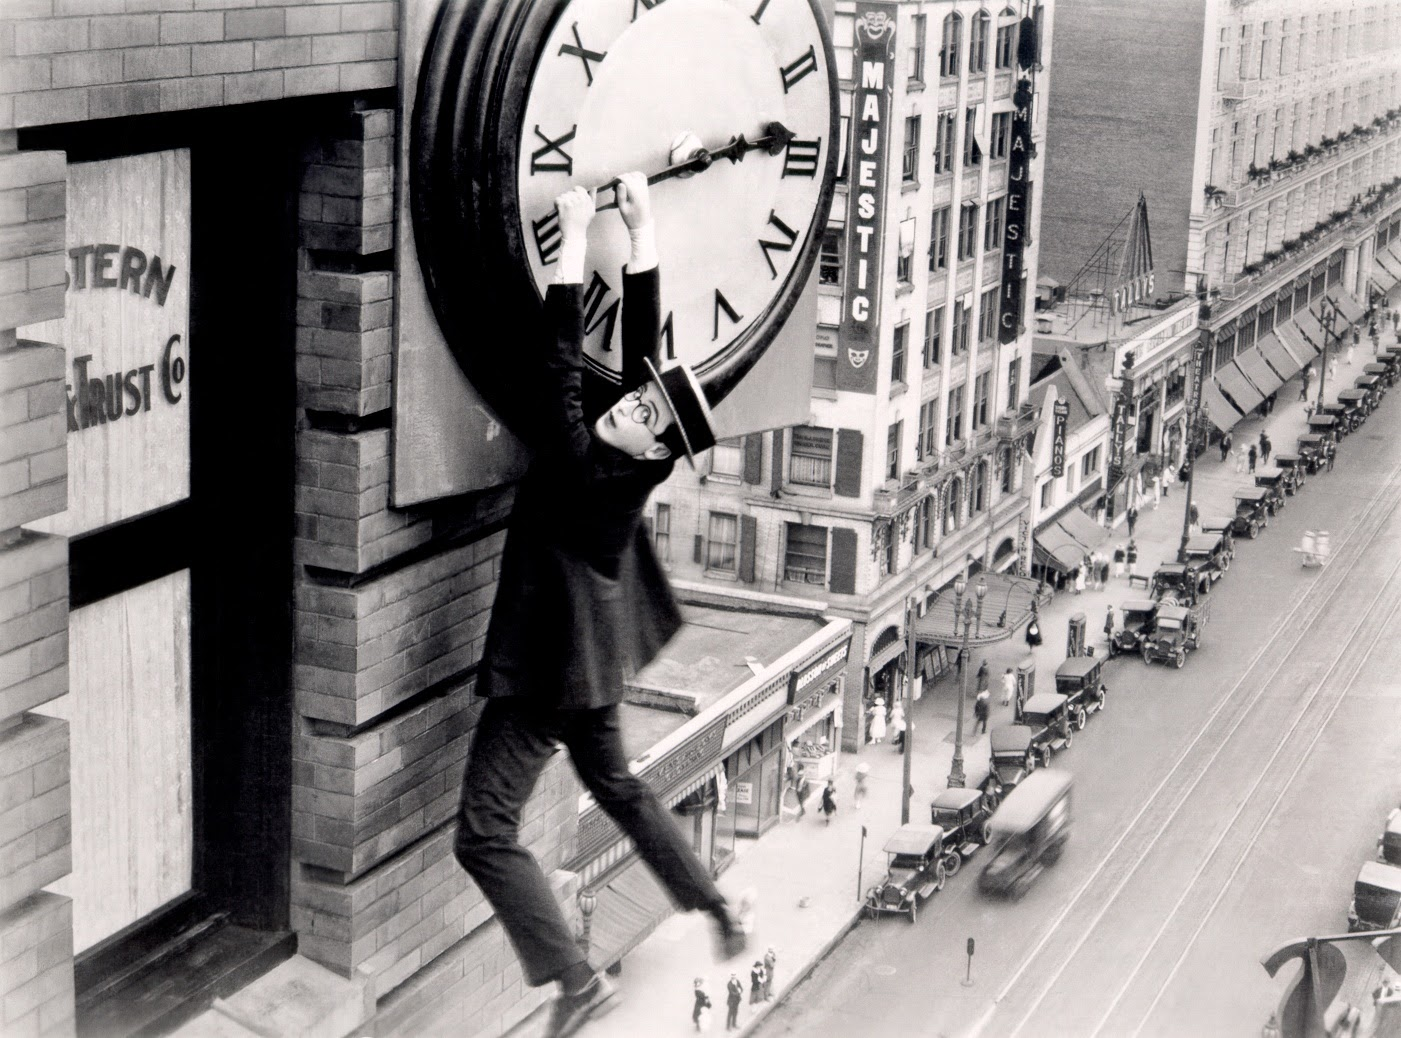 Harold Lloyd Safety Last hanging from clock